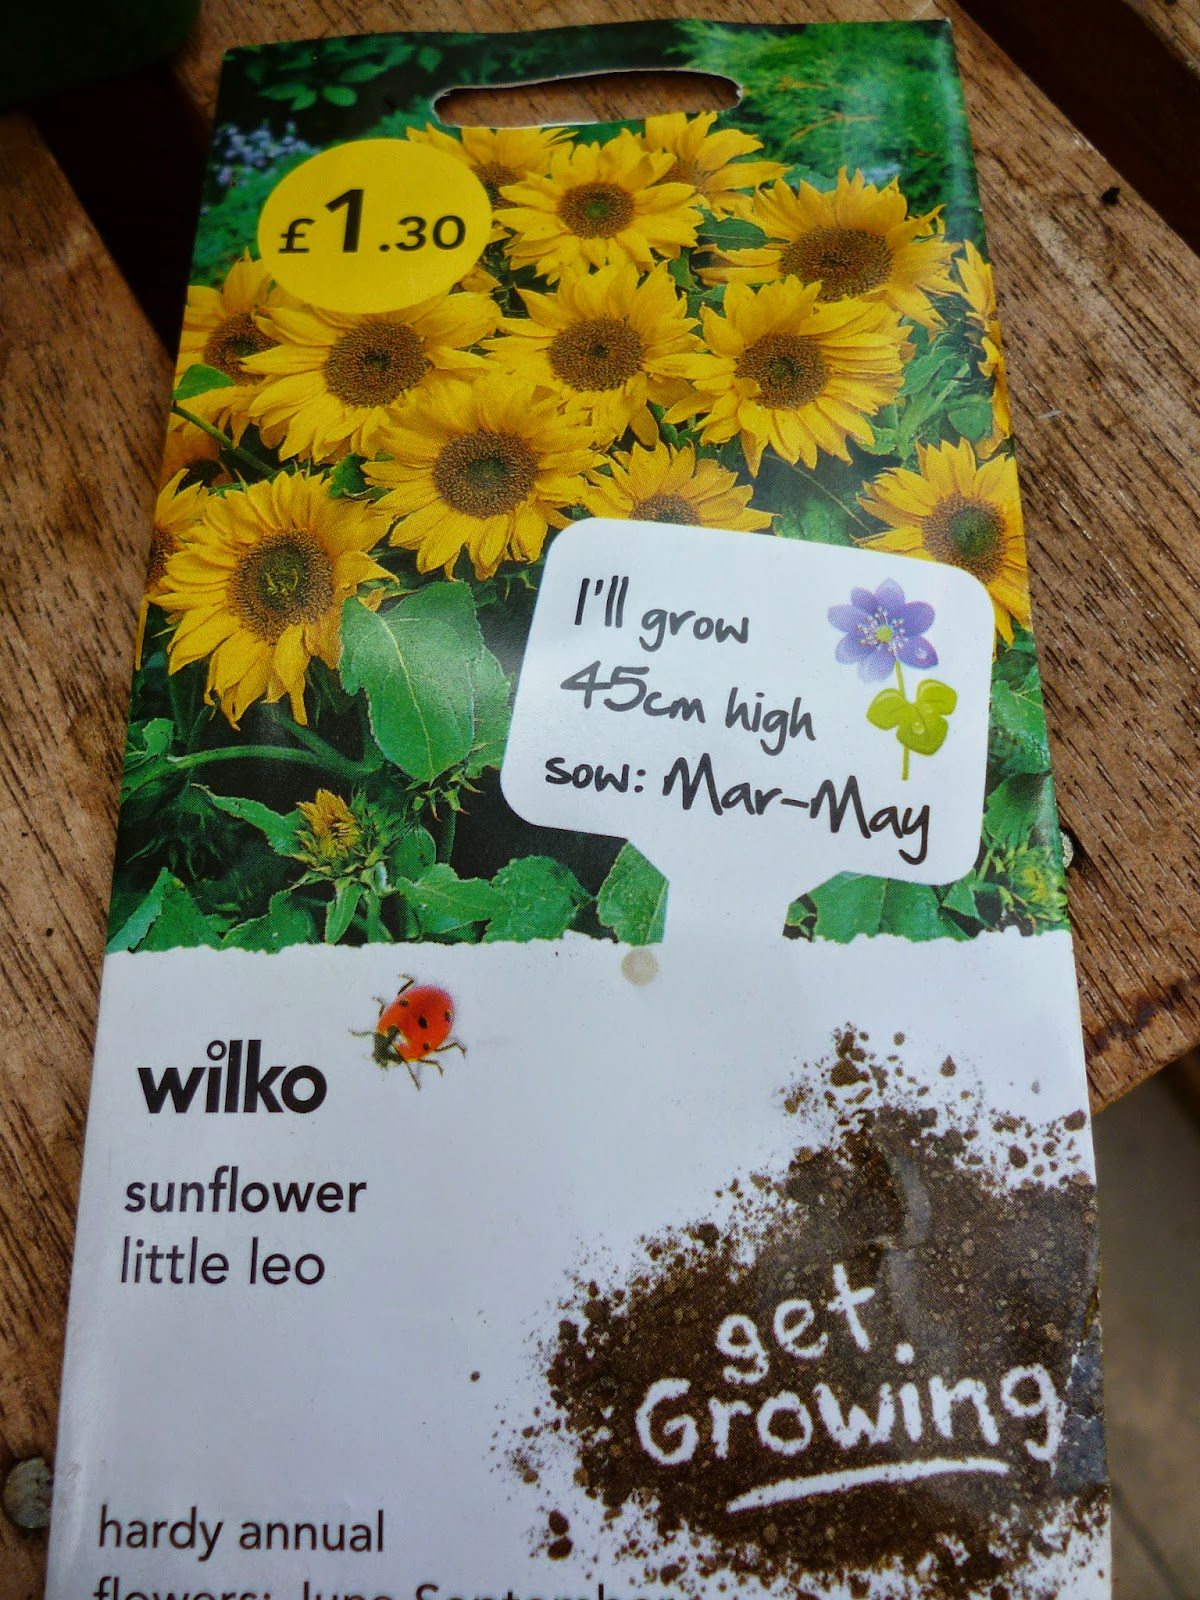 Little Leo Sunflower seeds